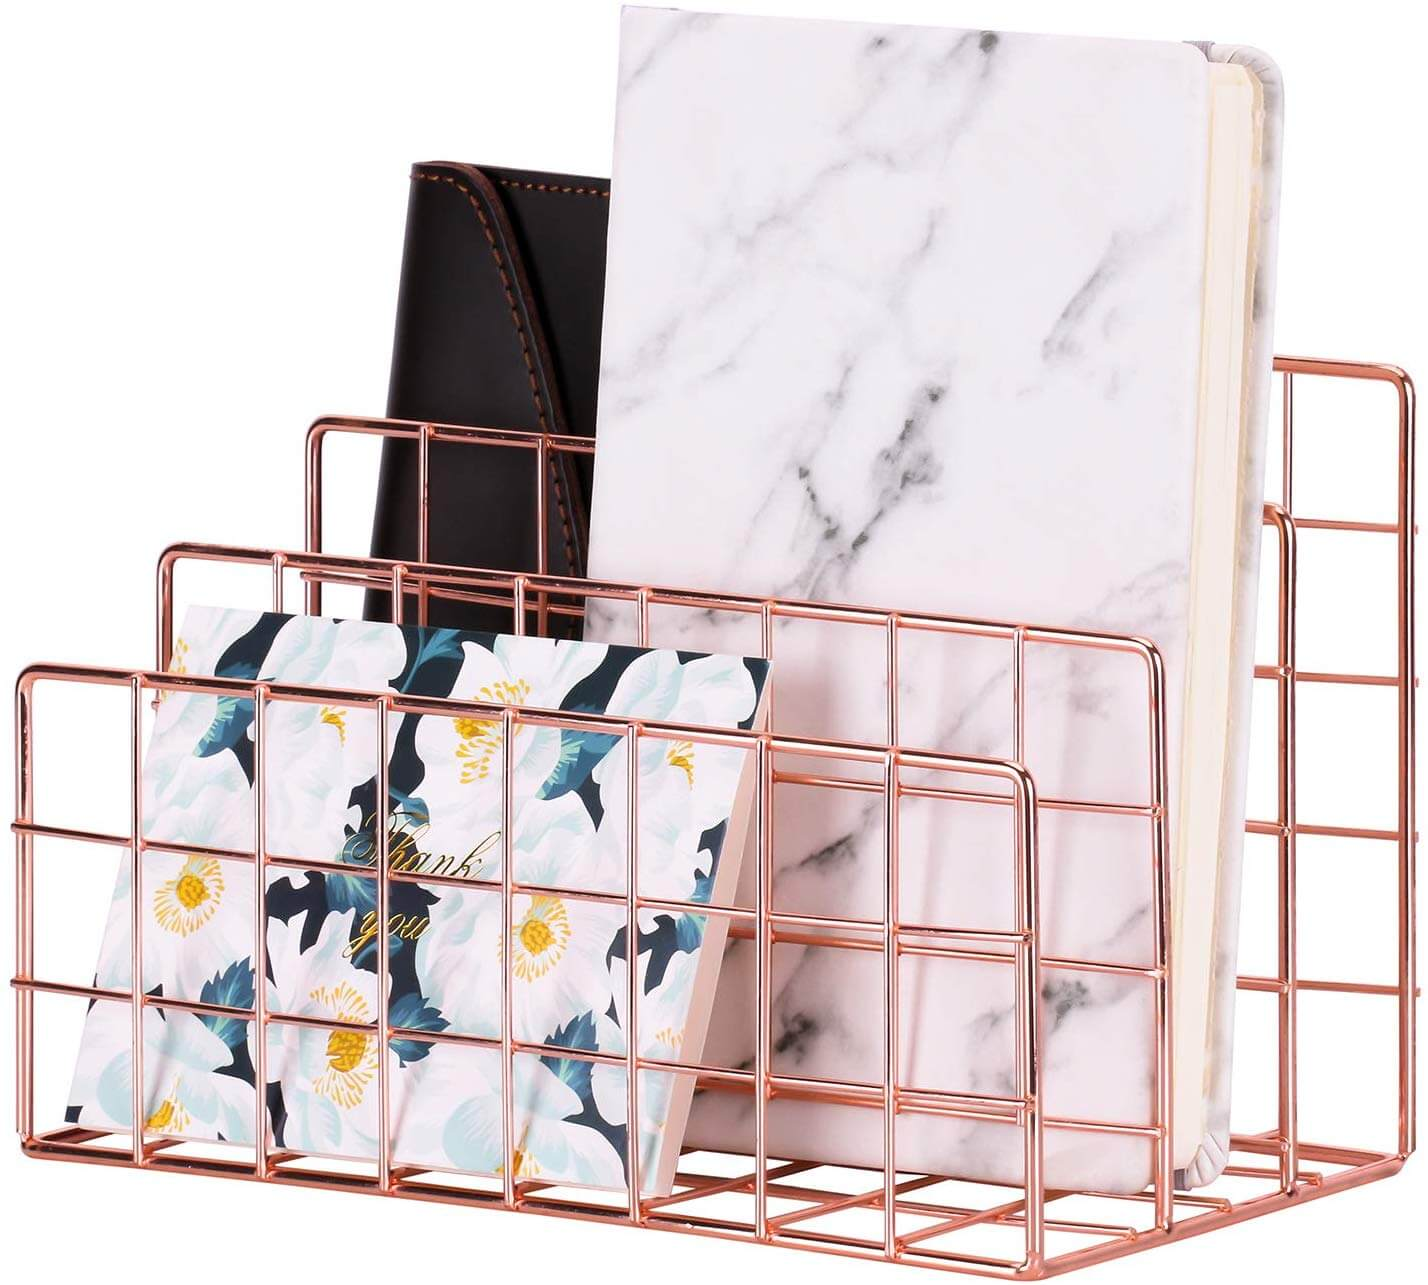 minimalistic rose gold desk organizer as an idea of how to get organized